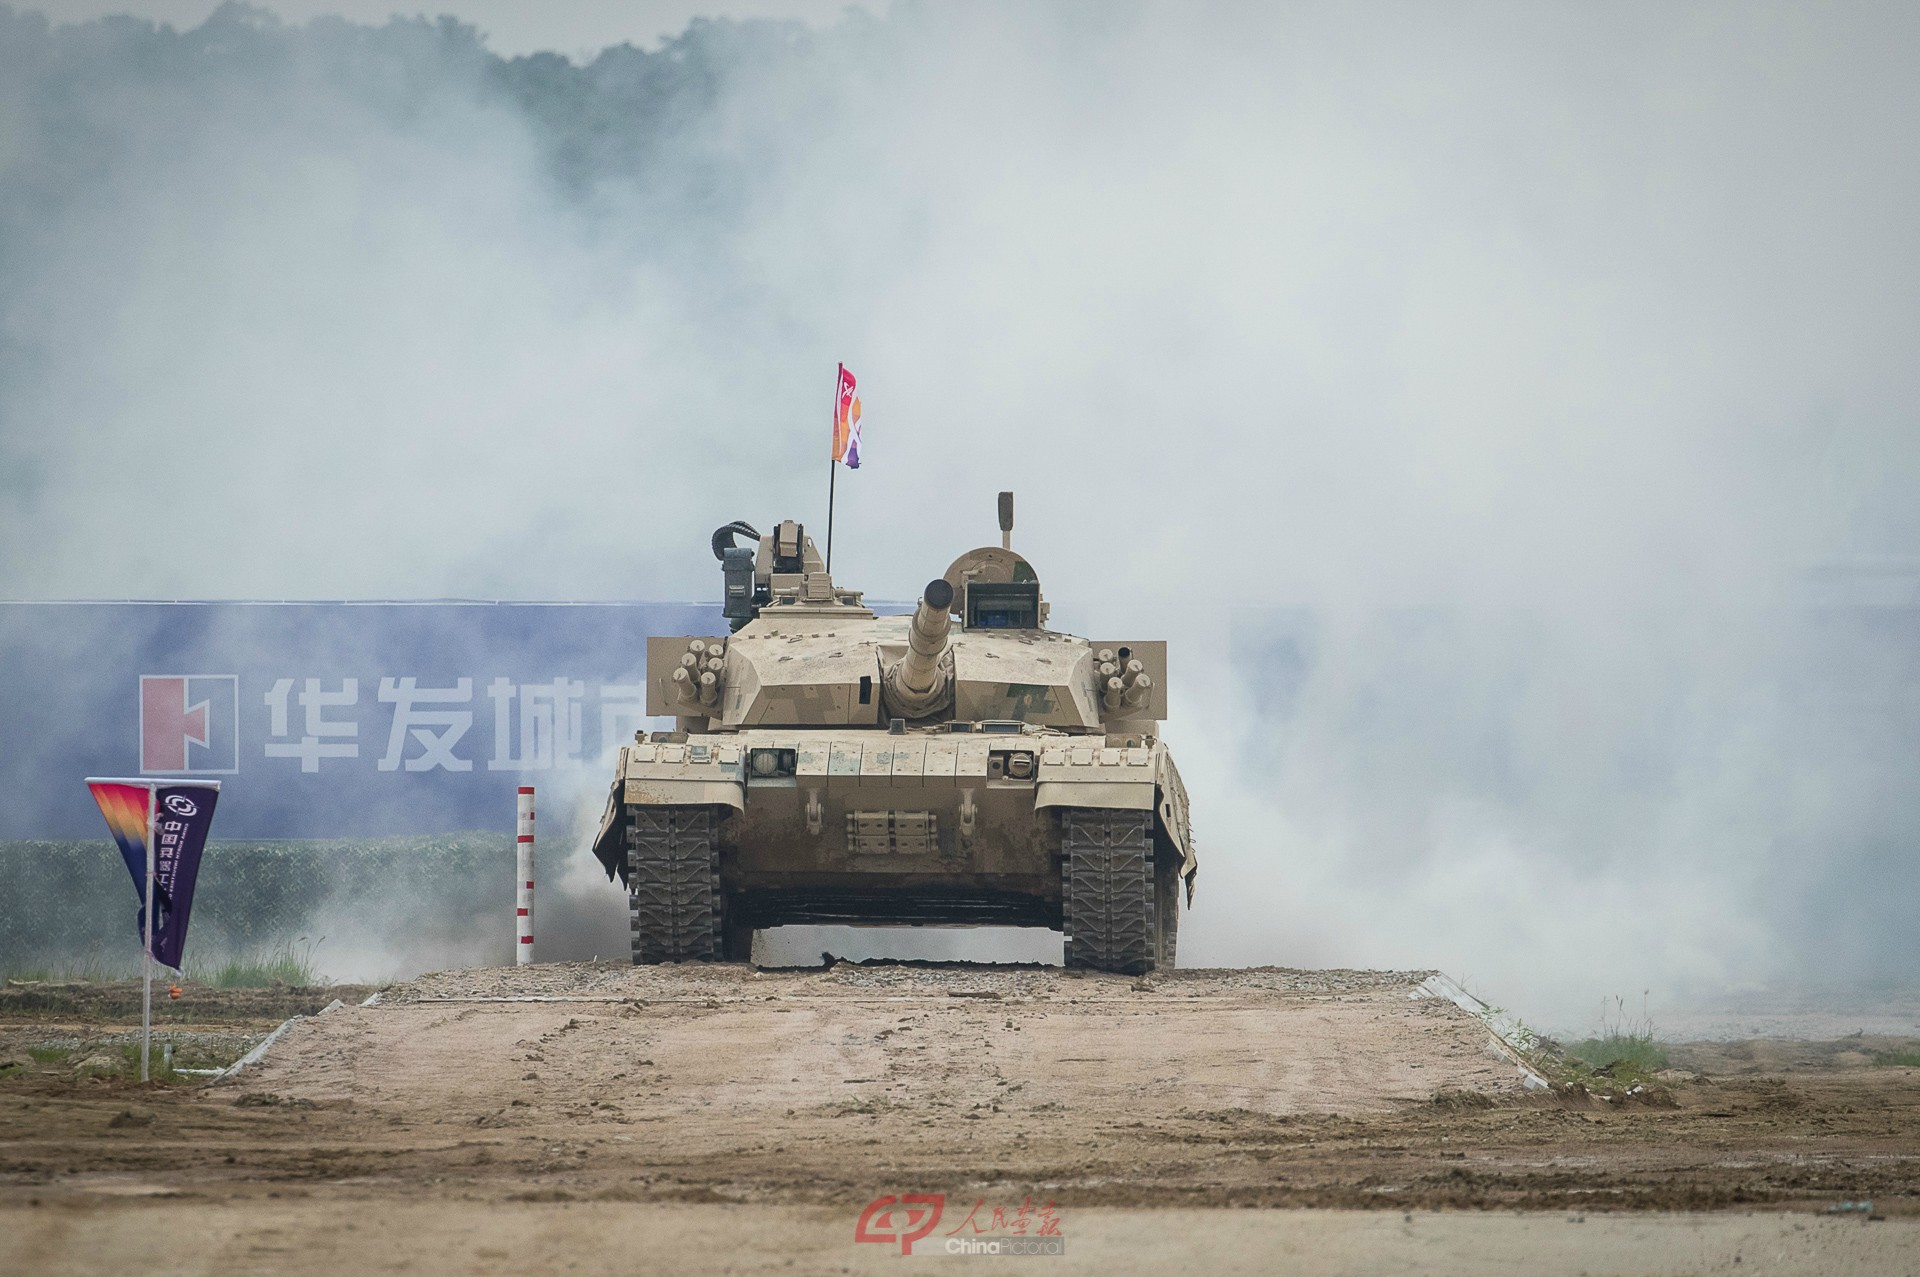 China People's Liberation Army (PLA): Photos and Videos - Page 3 30676759126_20619c0207_o_d